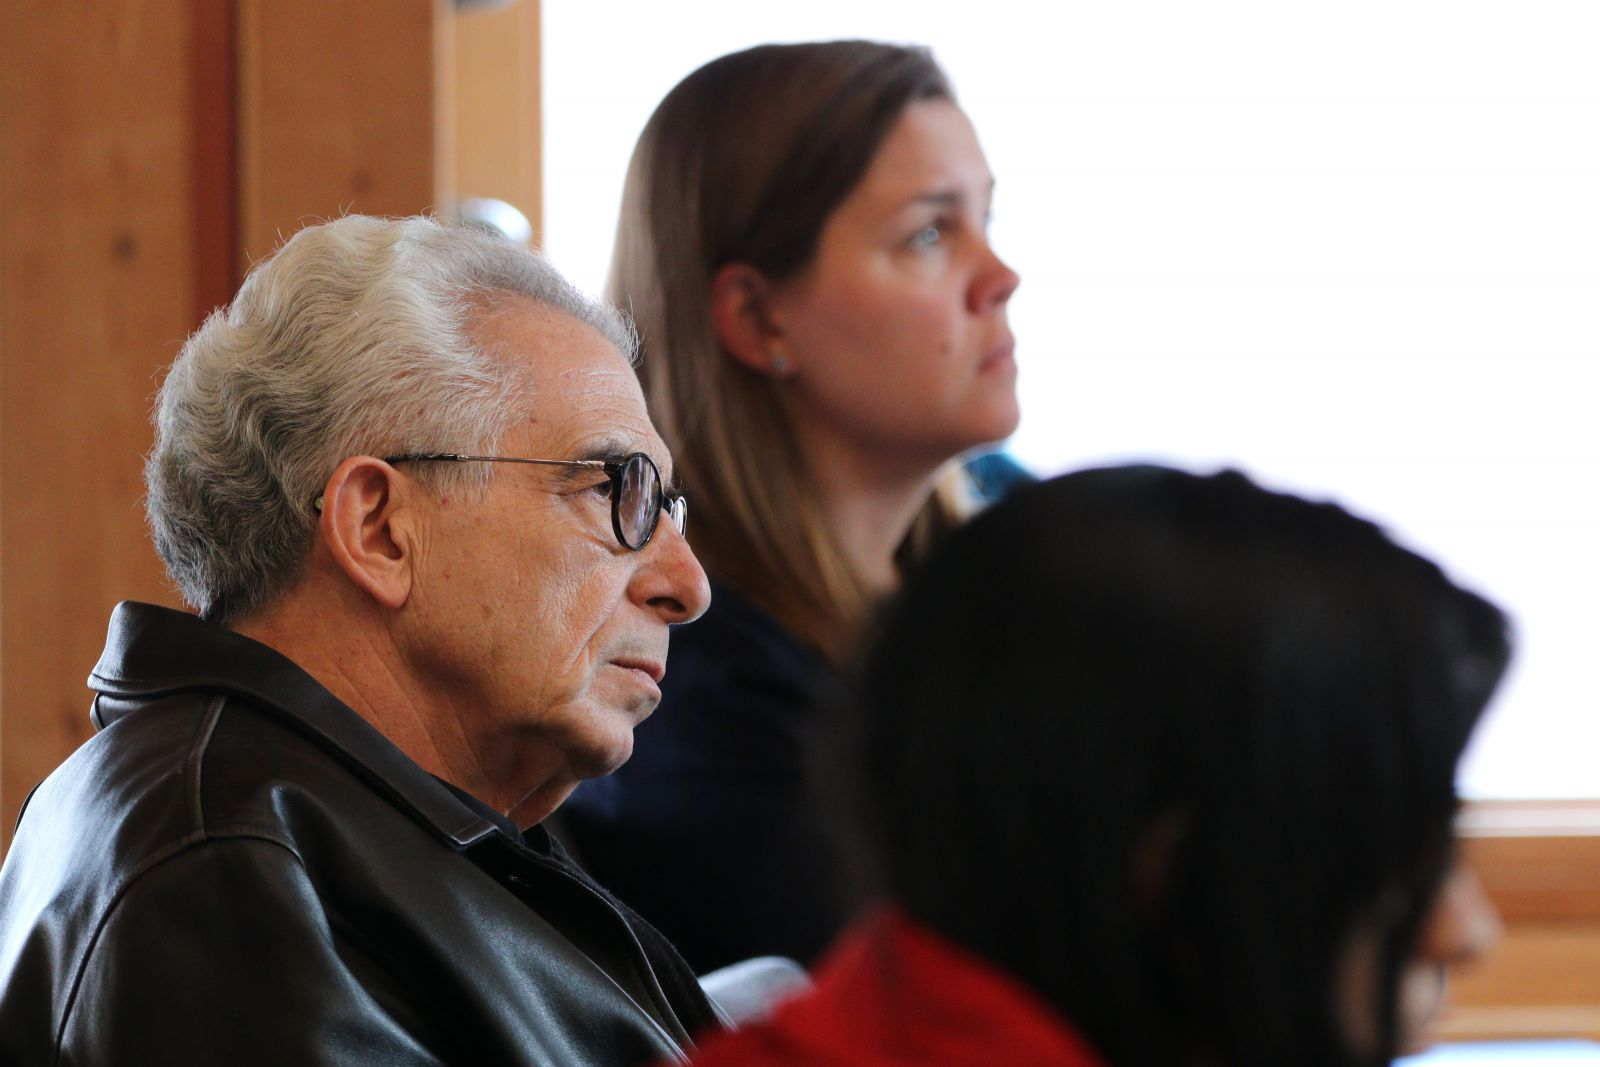 Ernesto Zedillo, former President of Mexico, attended SDLAC. Our closing keynote speaker, Julia Carabias, served as Minister of Environment during his time as President.